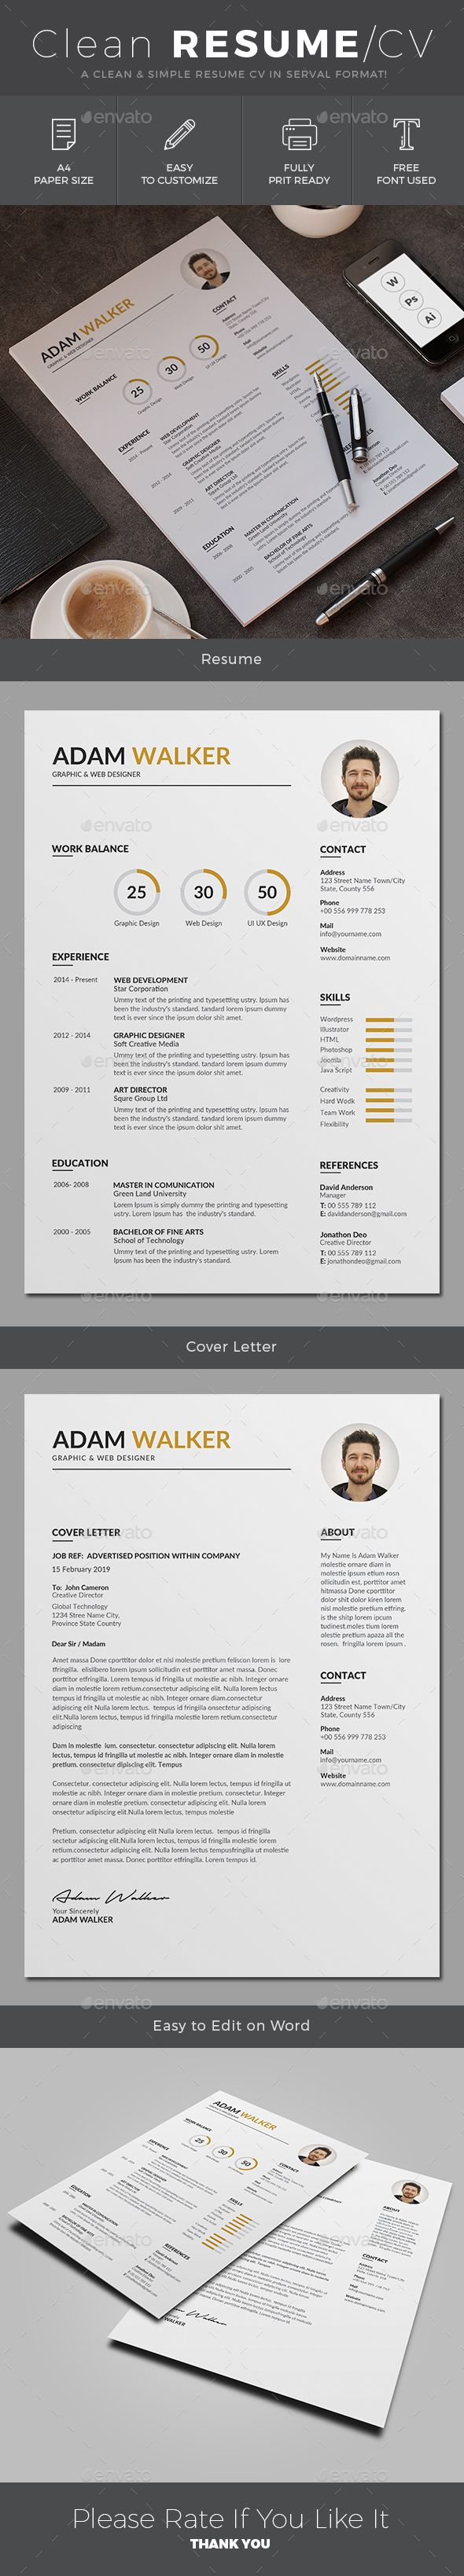 Resume 392 best resumes images on Pinterest